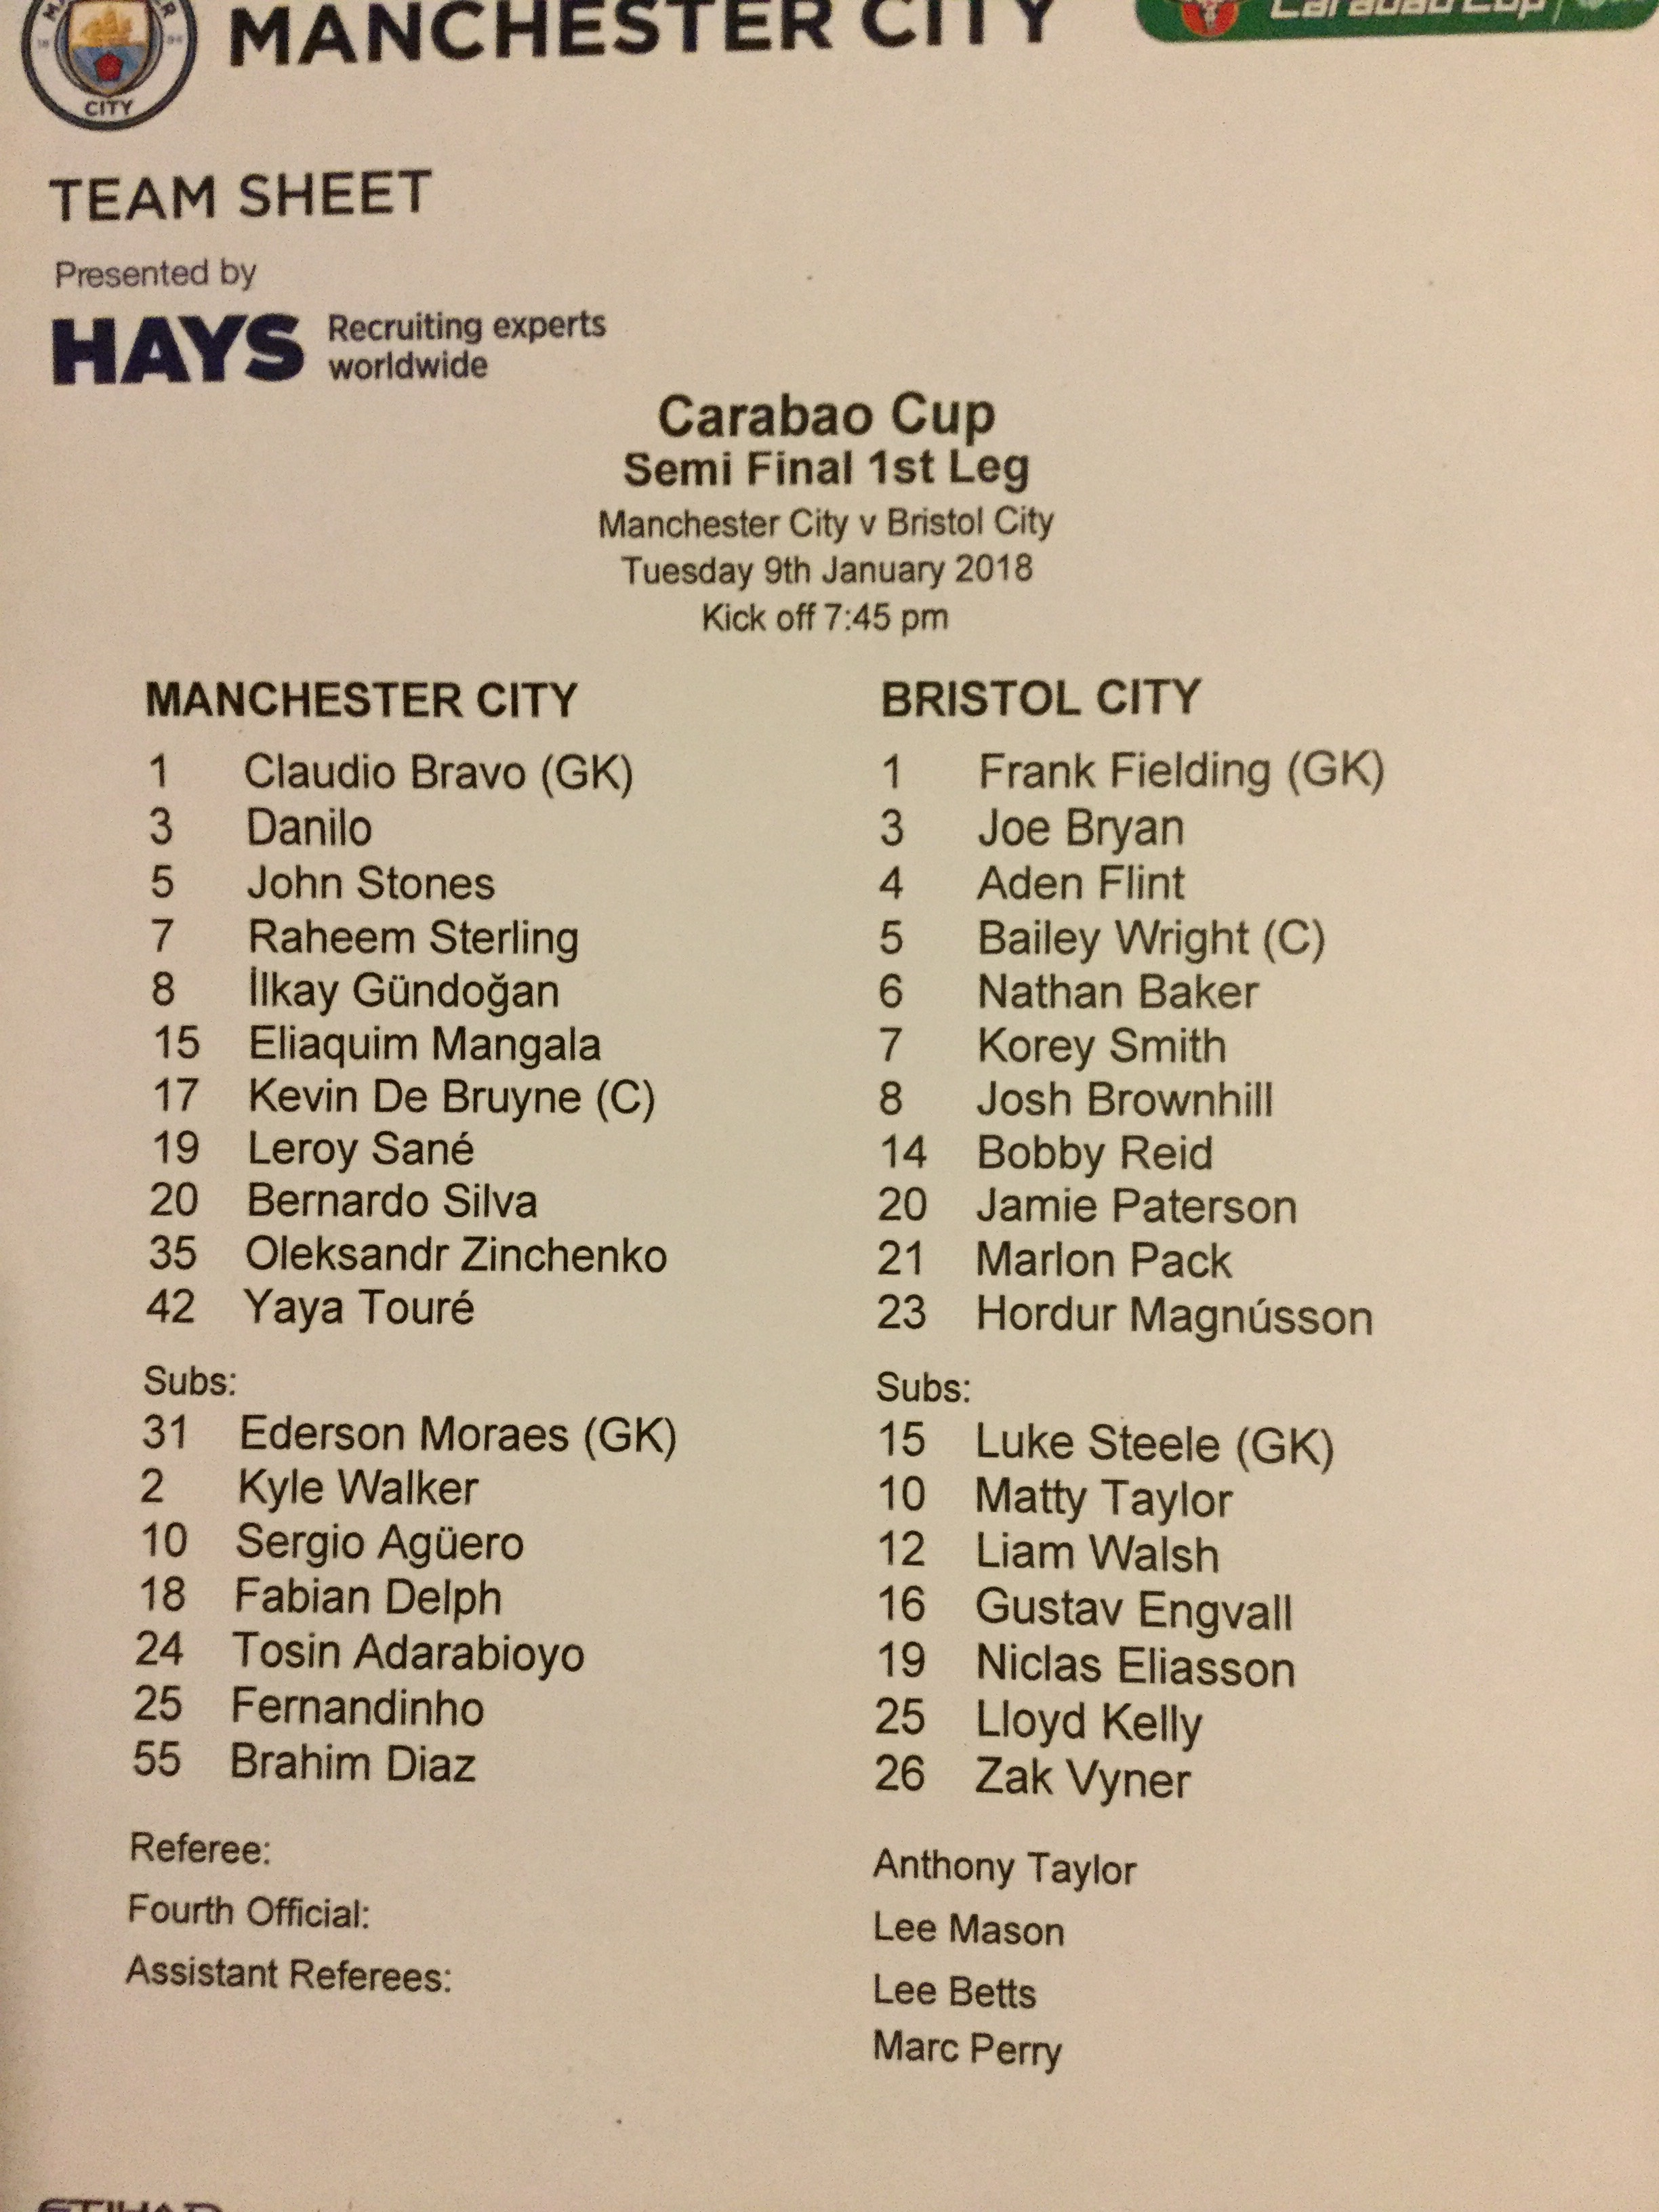 Manchester City v Bristol City 09-01-18 Team Sheet